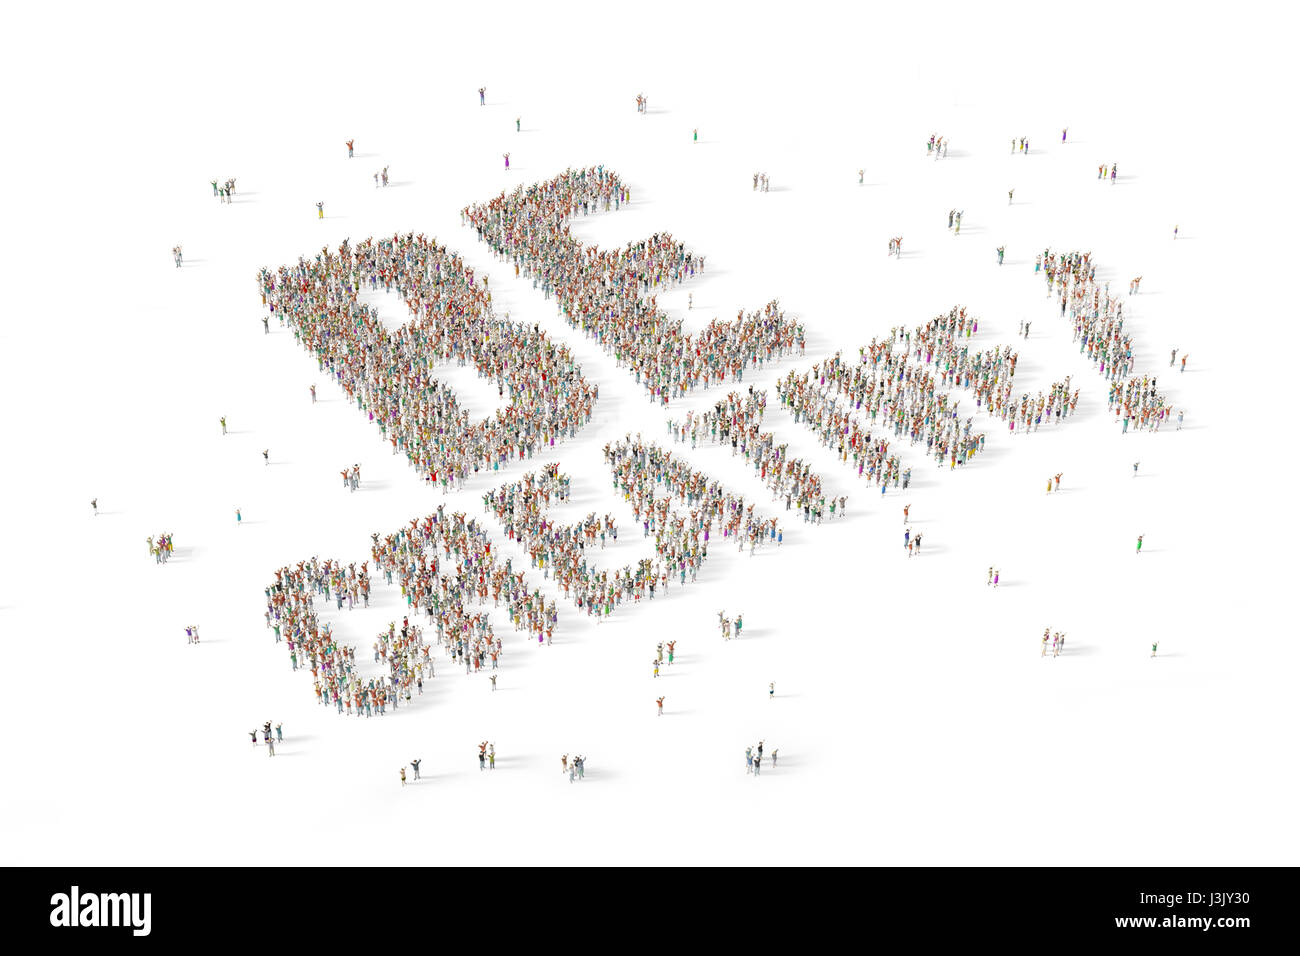 Large and diverse group of people gathered together in the shape of the word be creative - Stock Image